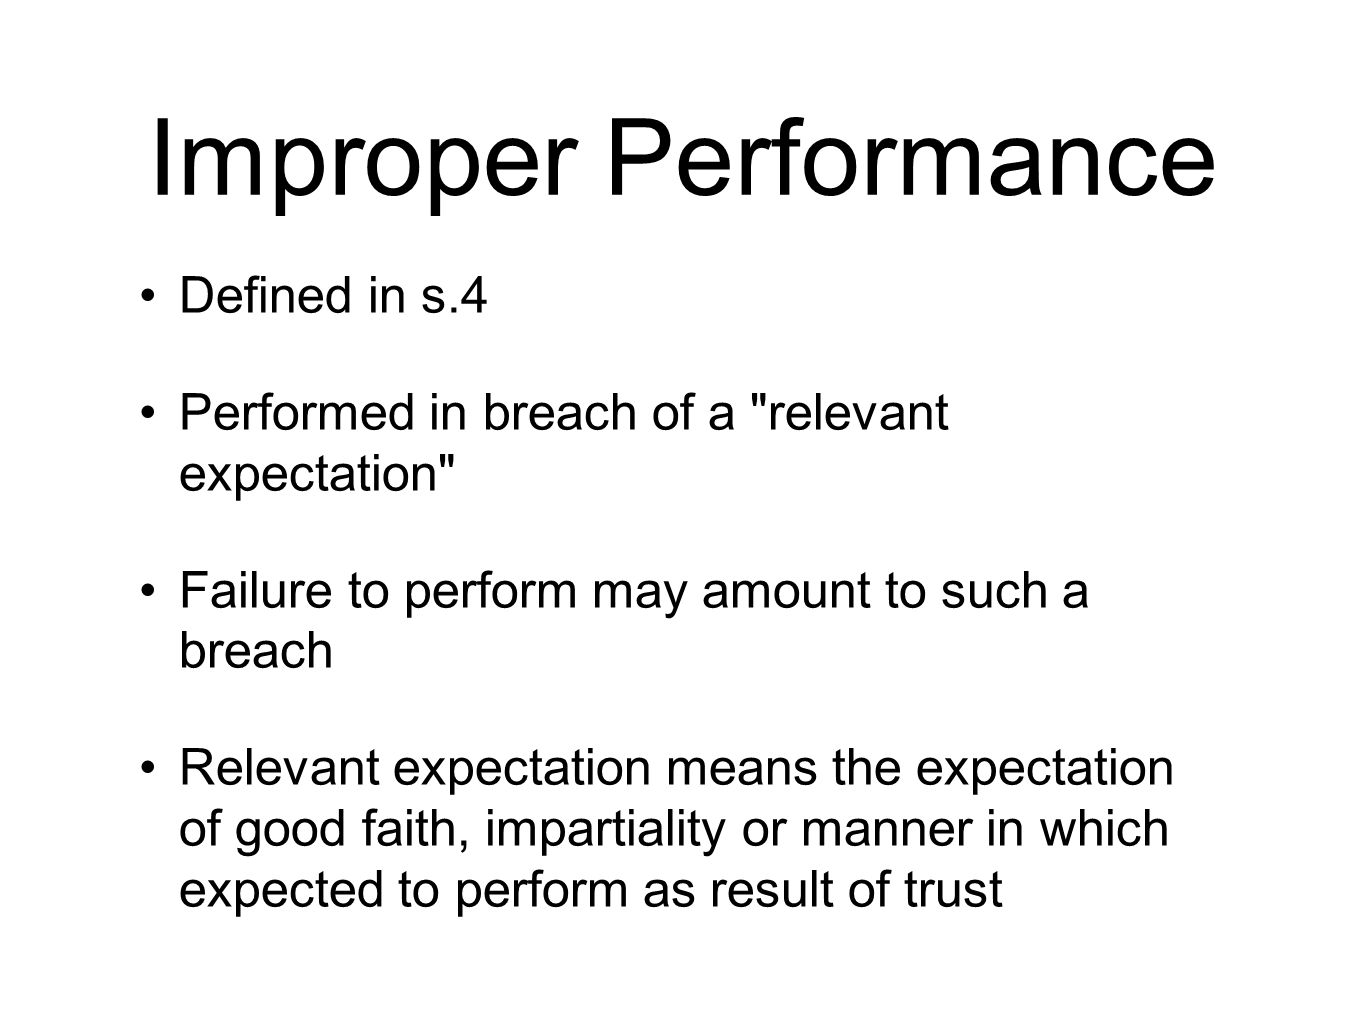 Improper Performance Defined in s.4 Performed in breach of a relevant expectation Failure to perform may amount to such a breach Relevant expectation means the expectation of good faith, impartiality or manner in which expected to perform as result of trust